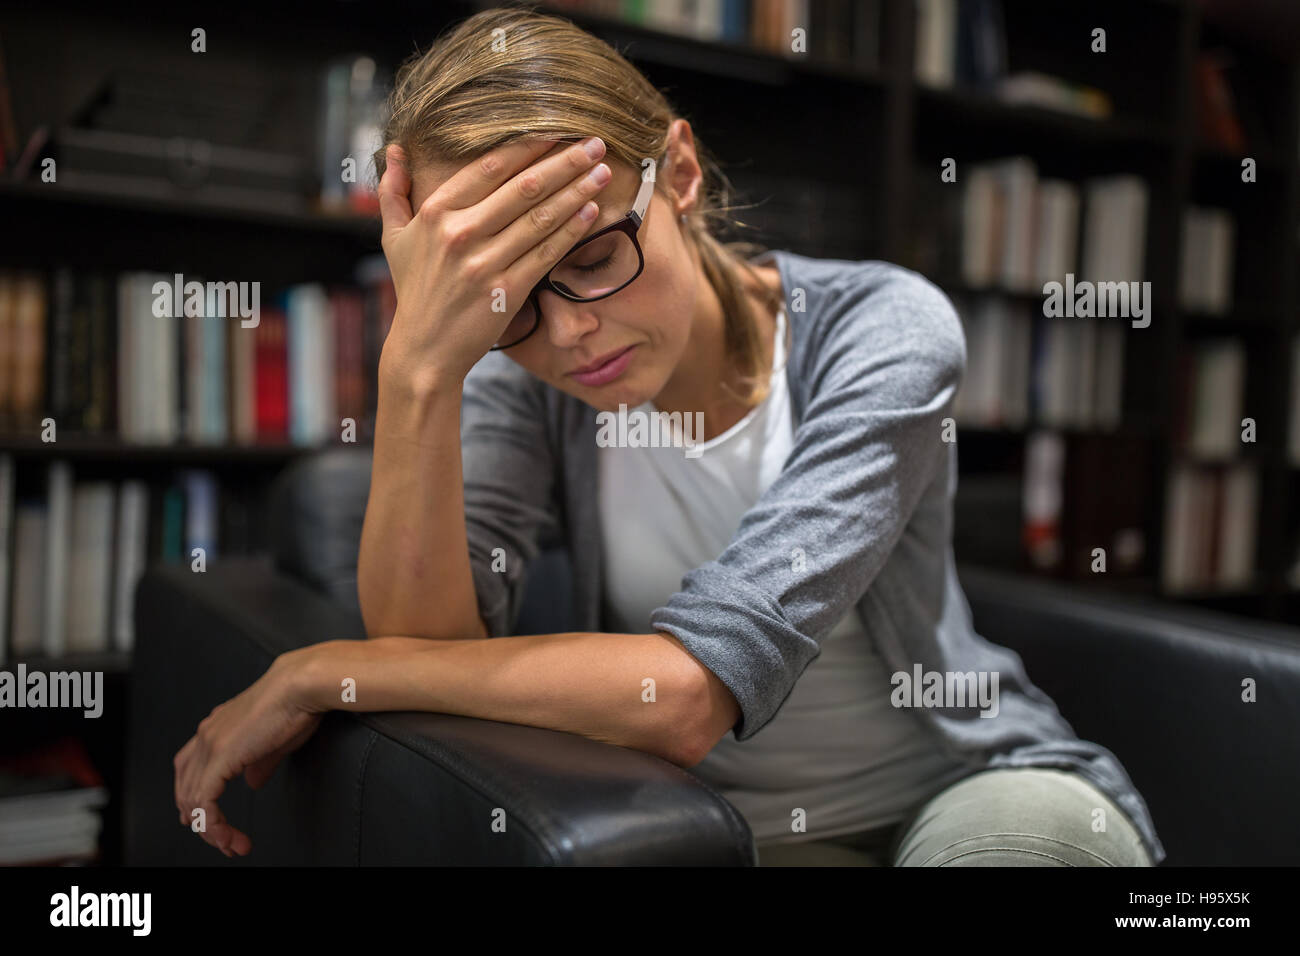 Woman suffering from depression Sitting in a chair (shallow DOF) - Stock Image